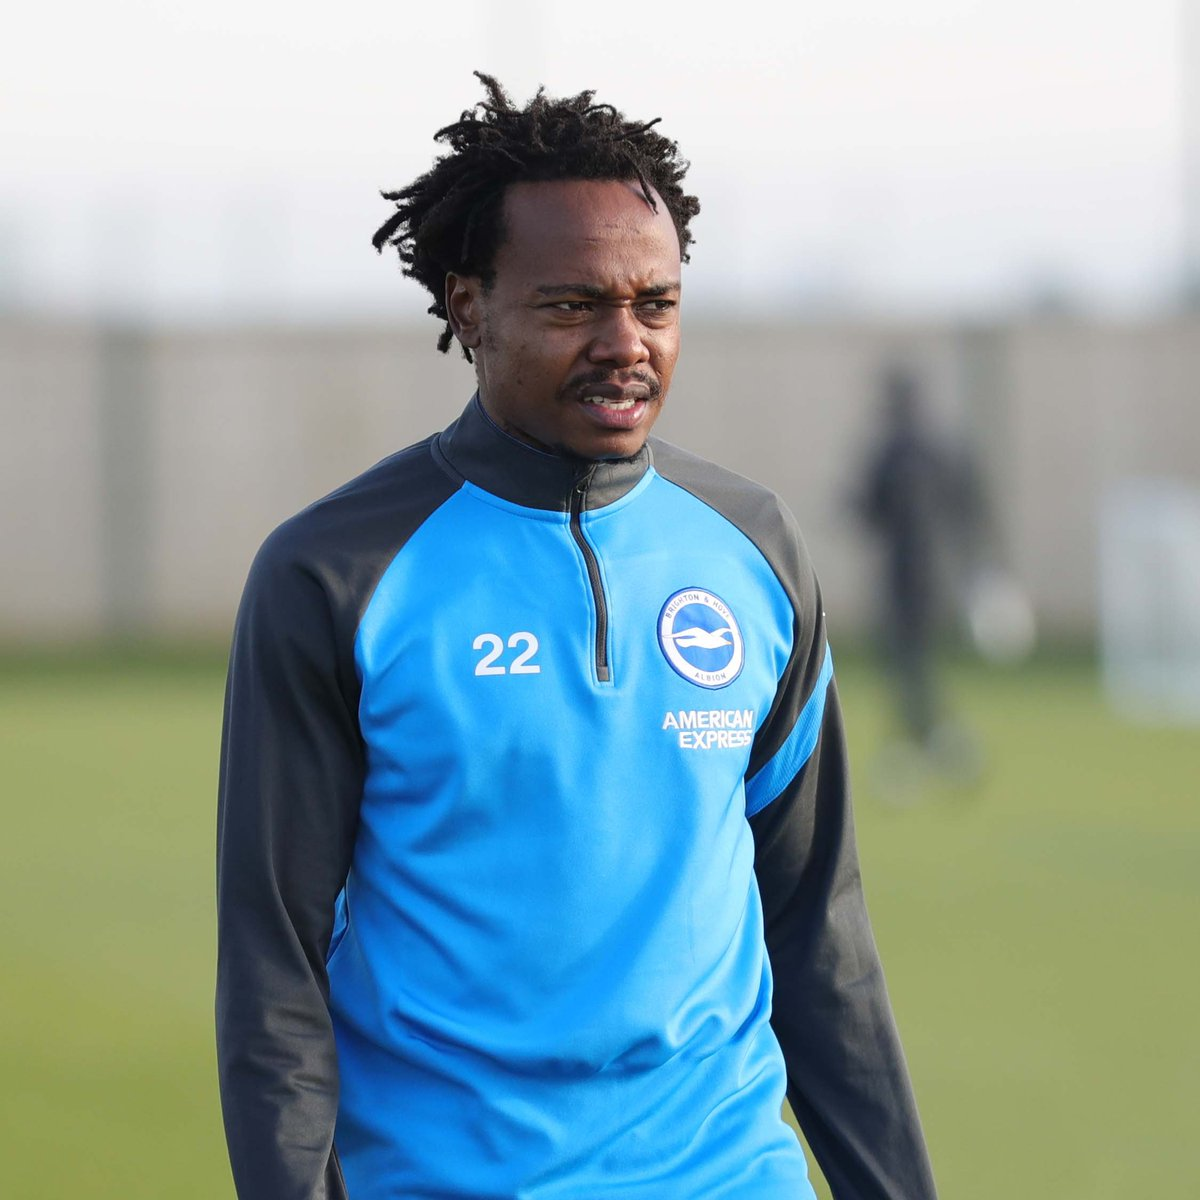 Bafana Bafana star striker @percymuzitau22 says he is excited to play in the English Premiership after he was recalled by Brighton & Hove Albion. Well done King!